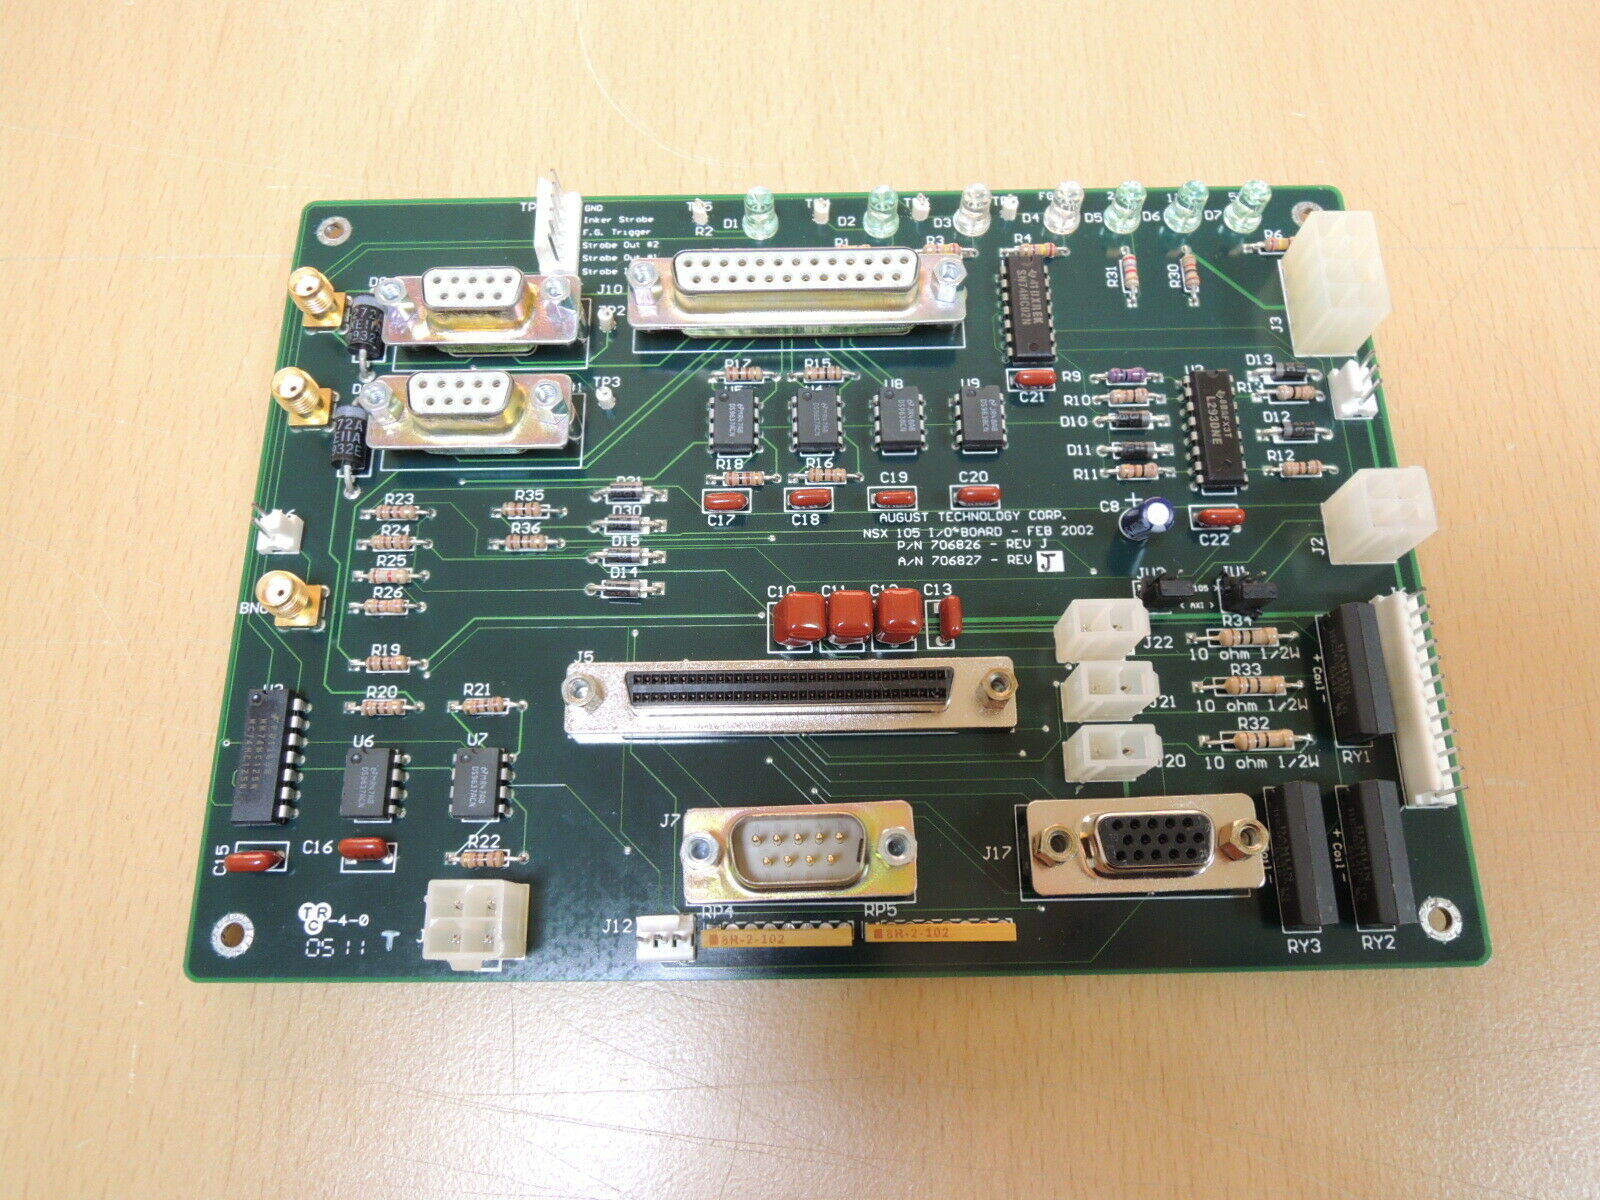 AUGUST TECHNOLOGY CORP. NSX 105 I/O PN 706826 REV J / Free Expedited Shipping